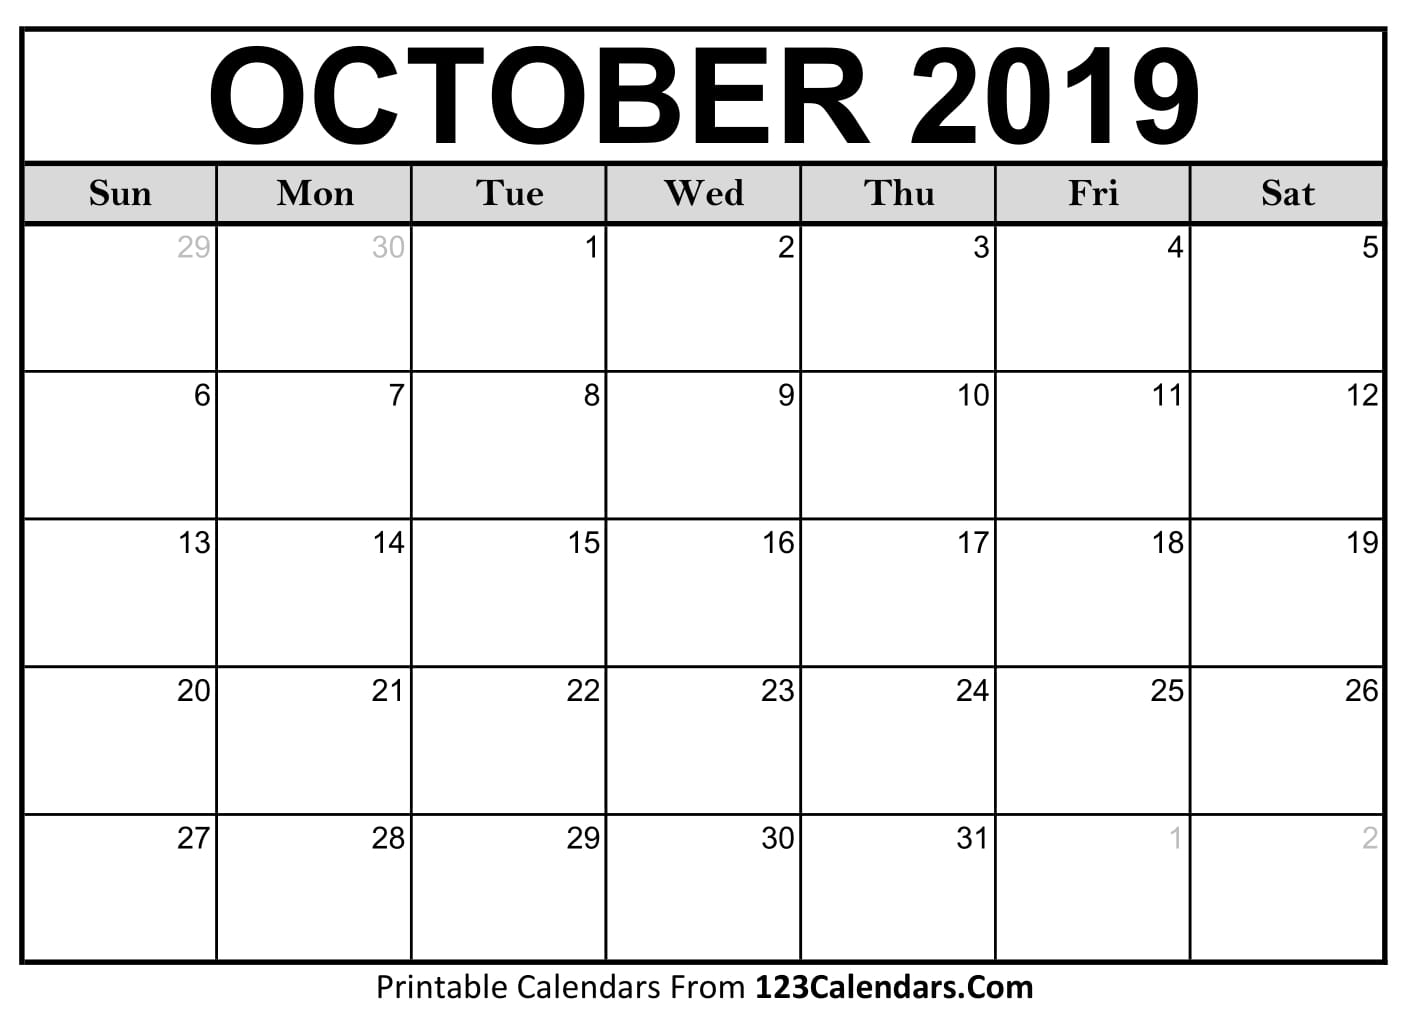 October 2019 Printable Calendar | 123Calendars inside Blank Calendar For Sept